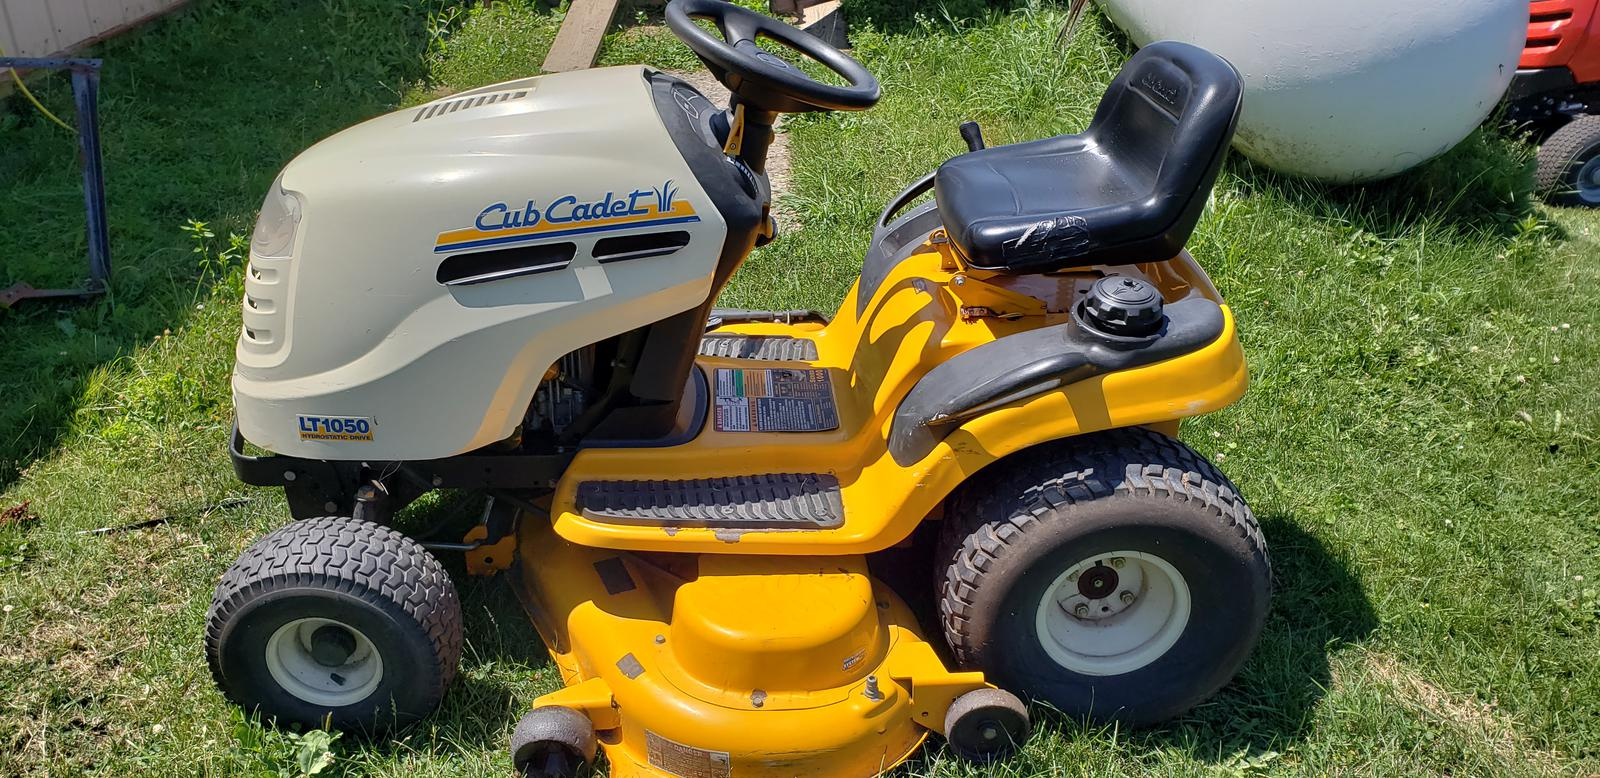 Cub Cadet Lt1050 Tops S. Cub Cadet For Sale In Tully Upstate Tractor And Mower 1600x778 Lt1050. Wiring. Mowers Cub Cadet Lgtx 1050 Wiring Diagram At Scoala.co